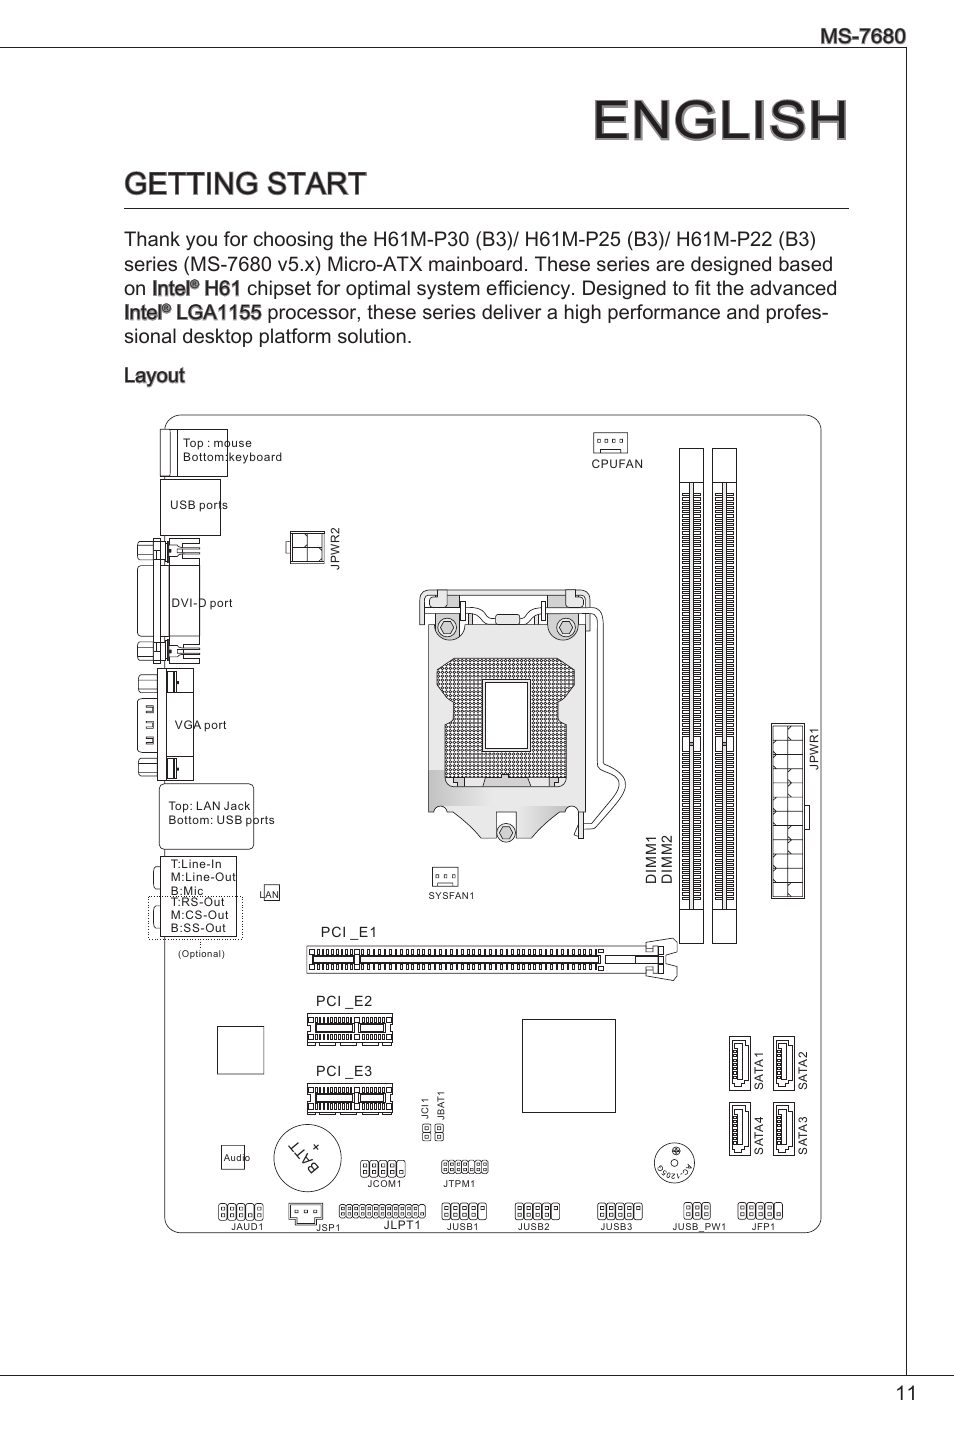 P25 Wiring Diagram Electrical Diagrams A Gfci Outlet Data Outlets In Series